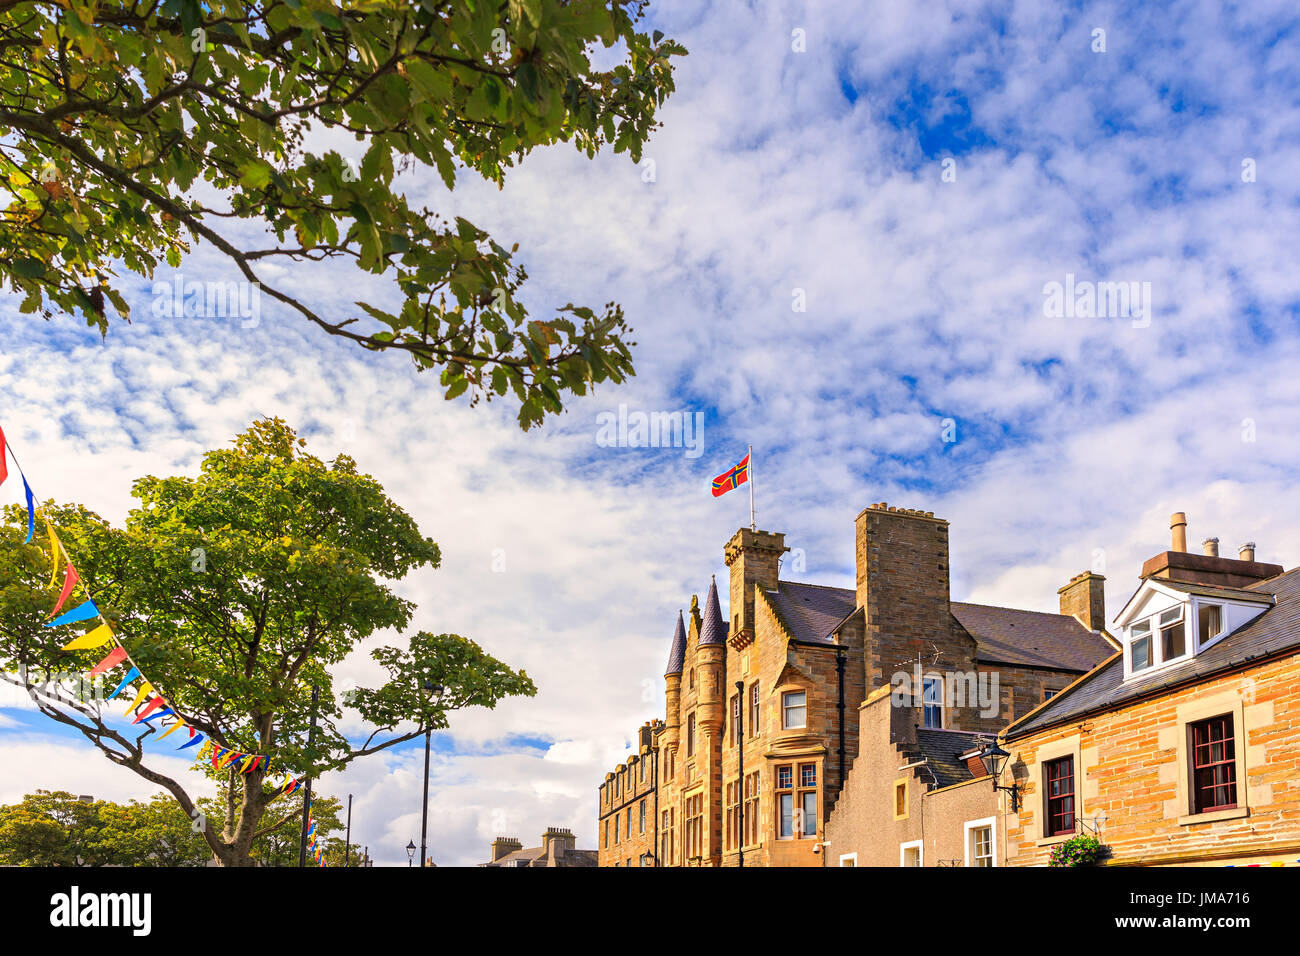 St Ola Community Centre and Town Hall at Kirkwall, Orkney Island, Scotland. - Stock Image